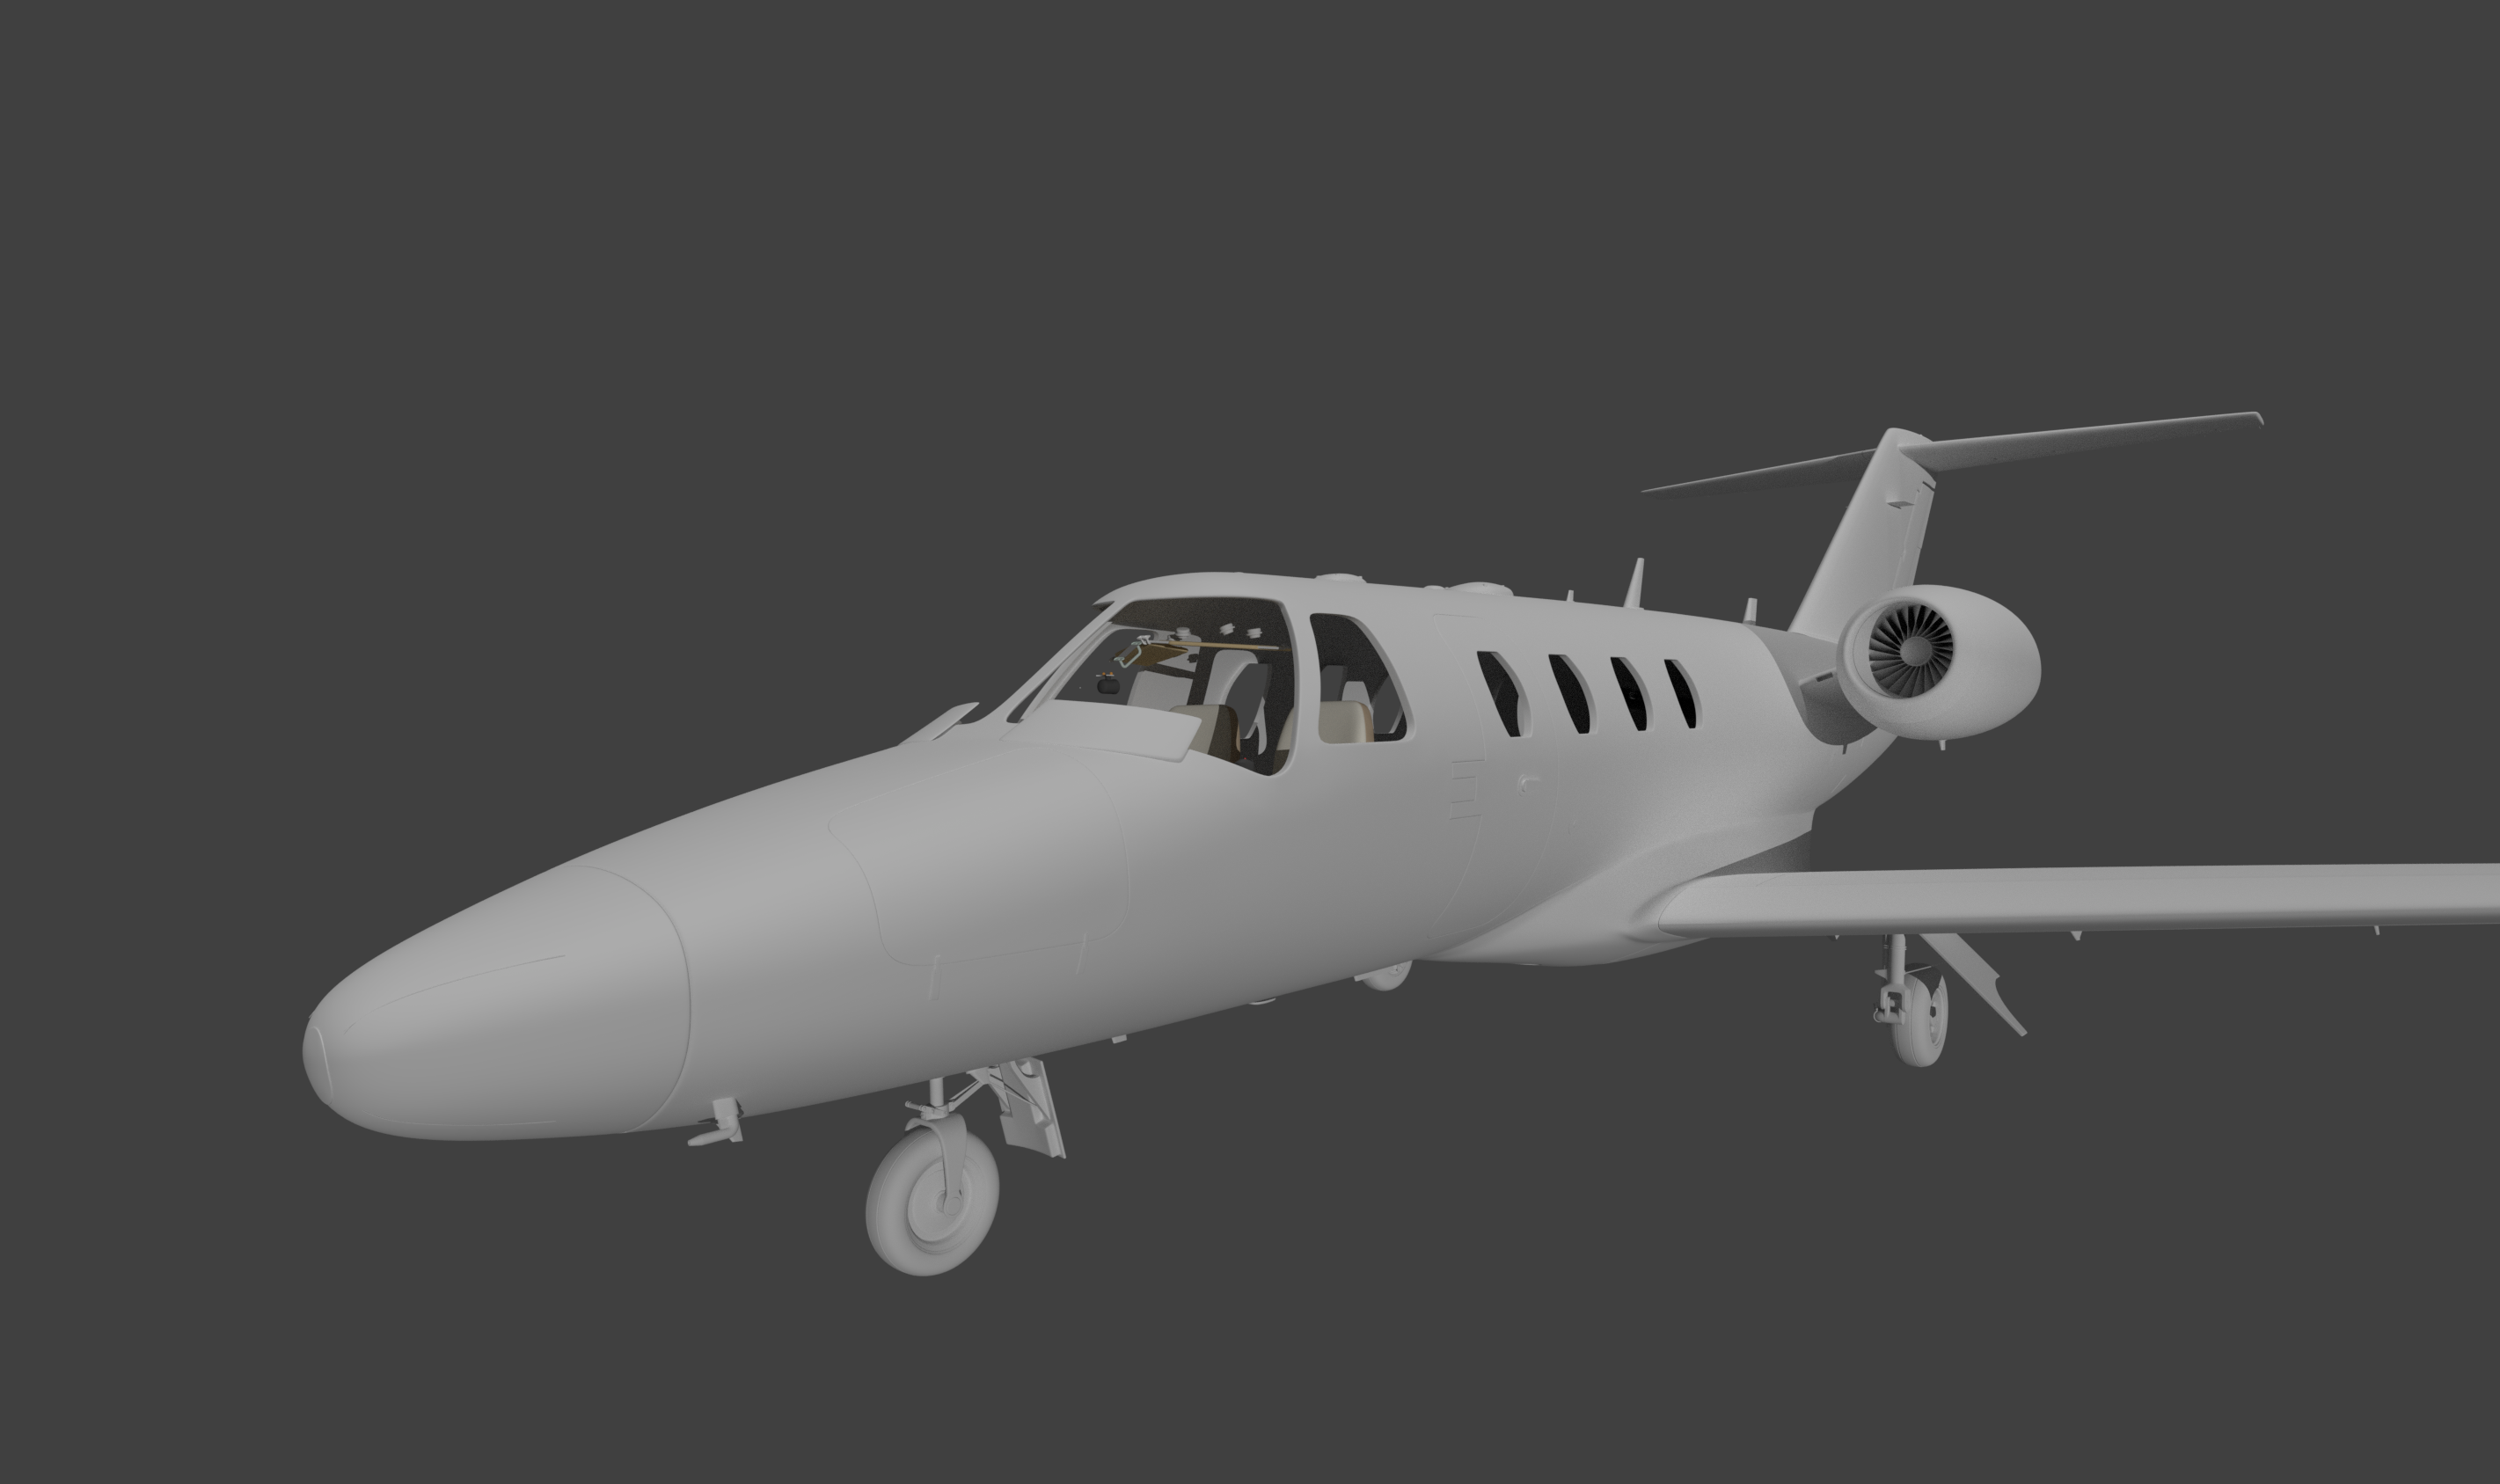 20 July 2018 CitationJet 525 Development Update